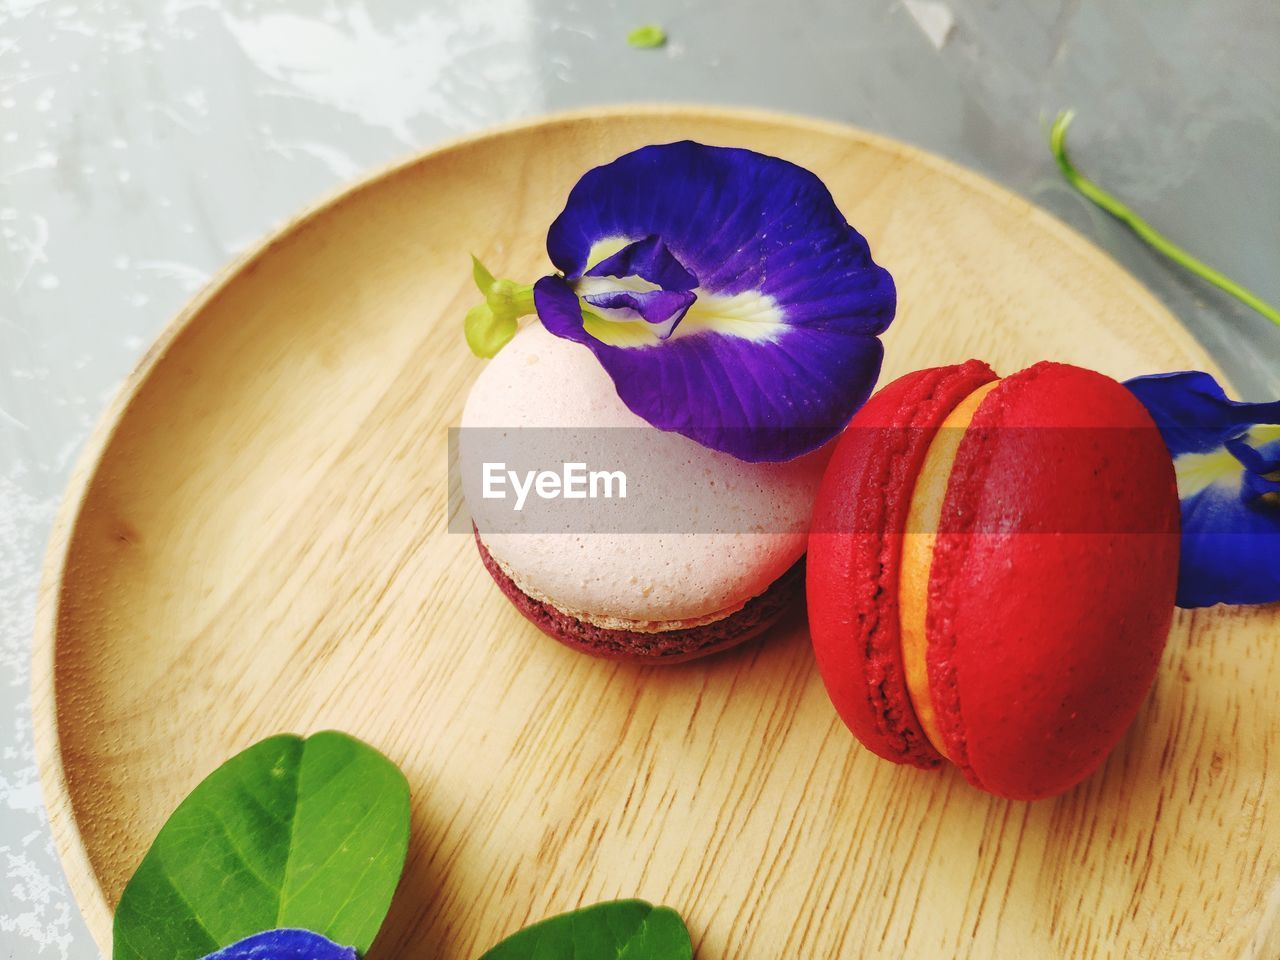 freshness, still life, food, food and drink, indoors, table, fruit, wellbeing, close-up, healthy eating, flower, flowering plant, plant, no people, high angle view, wood - material, nature, sweet food, leaf, red, purple